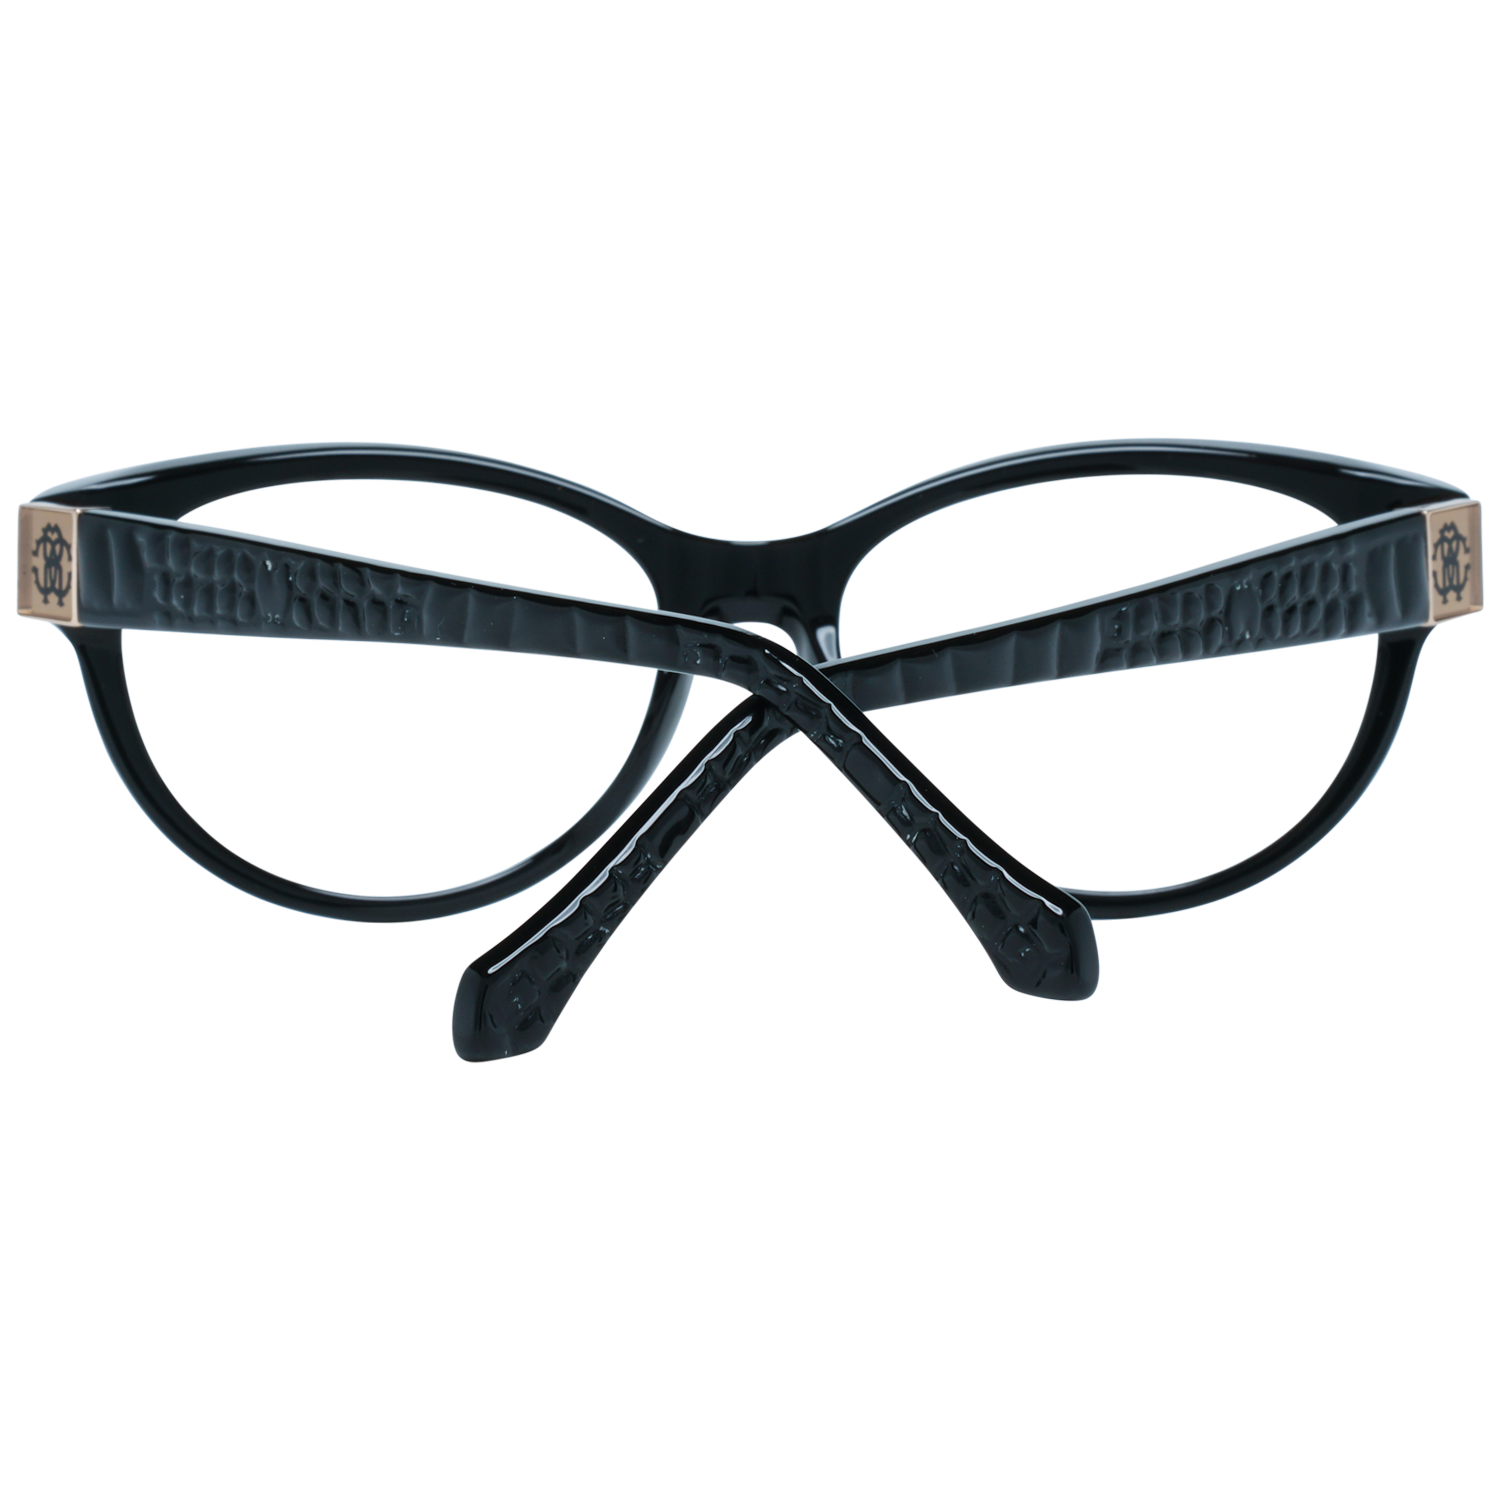 Roberto Cavalli Optical Frame RC0756 001 54 Women Black